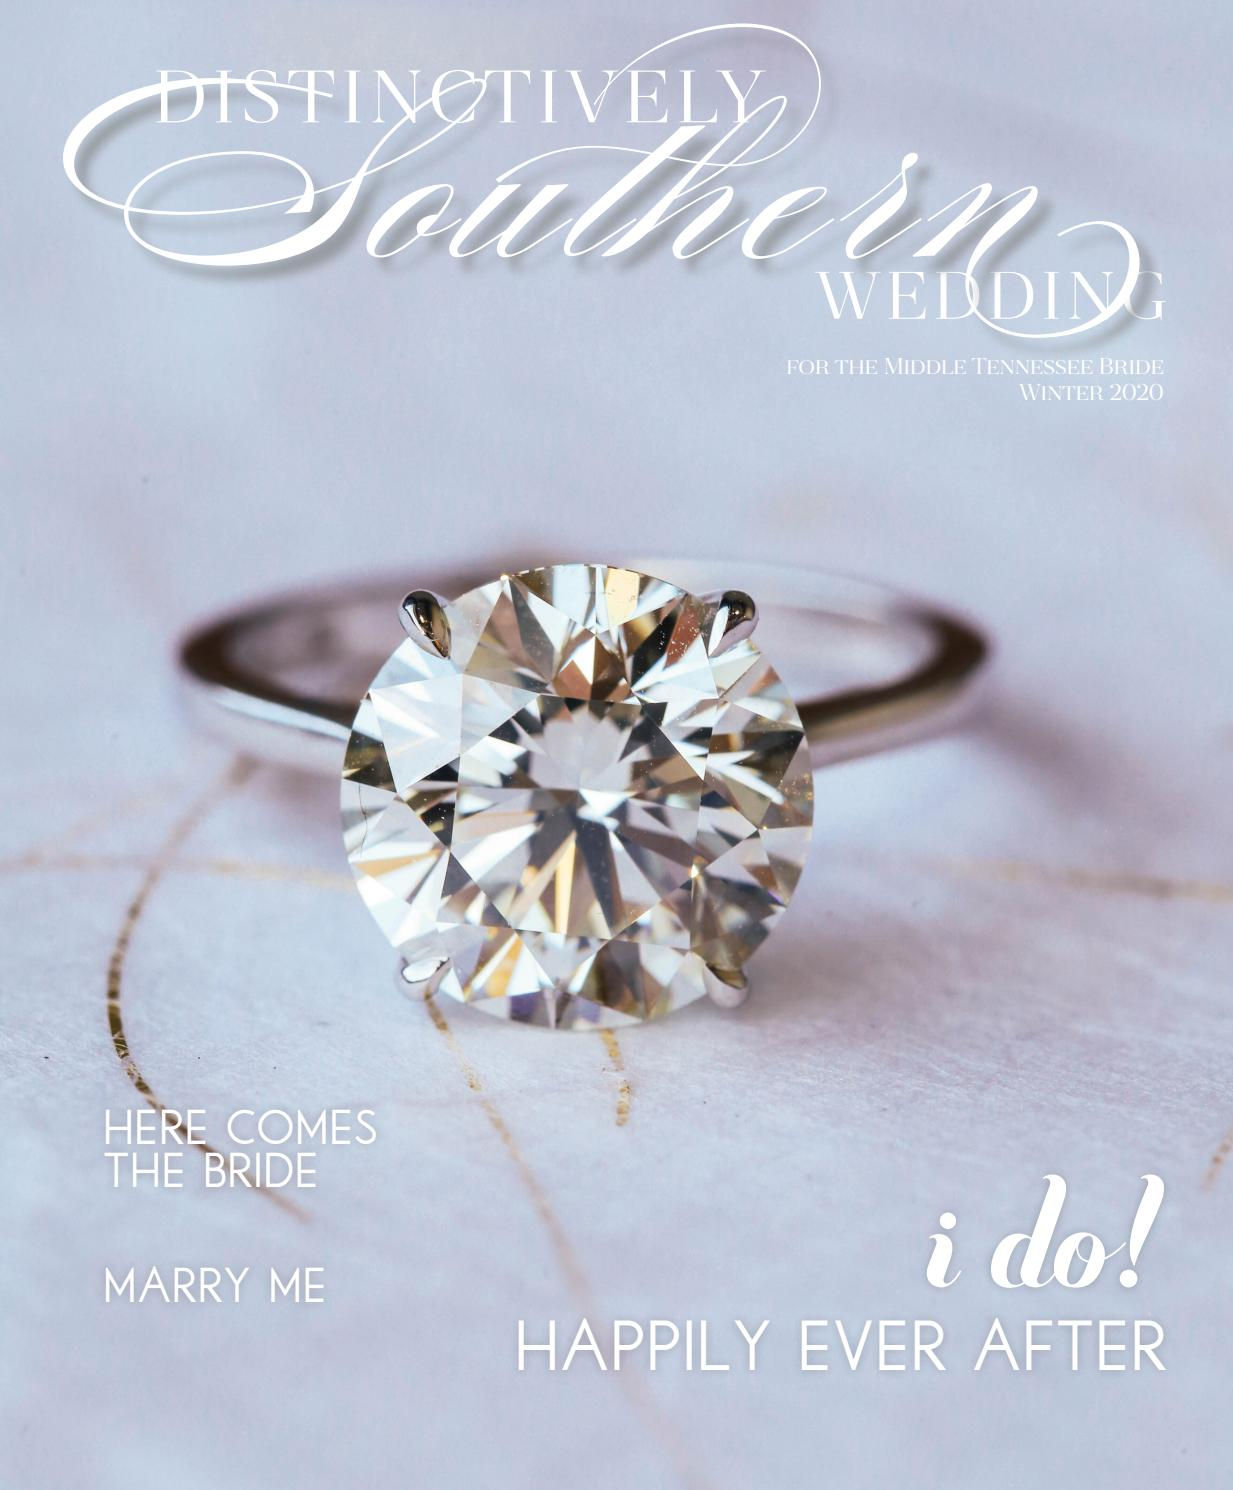 Distinctively Southern Wedding Winter 2020 Issue By Robertson